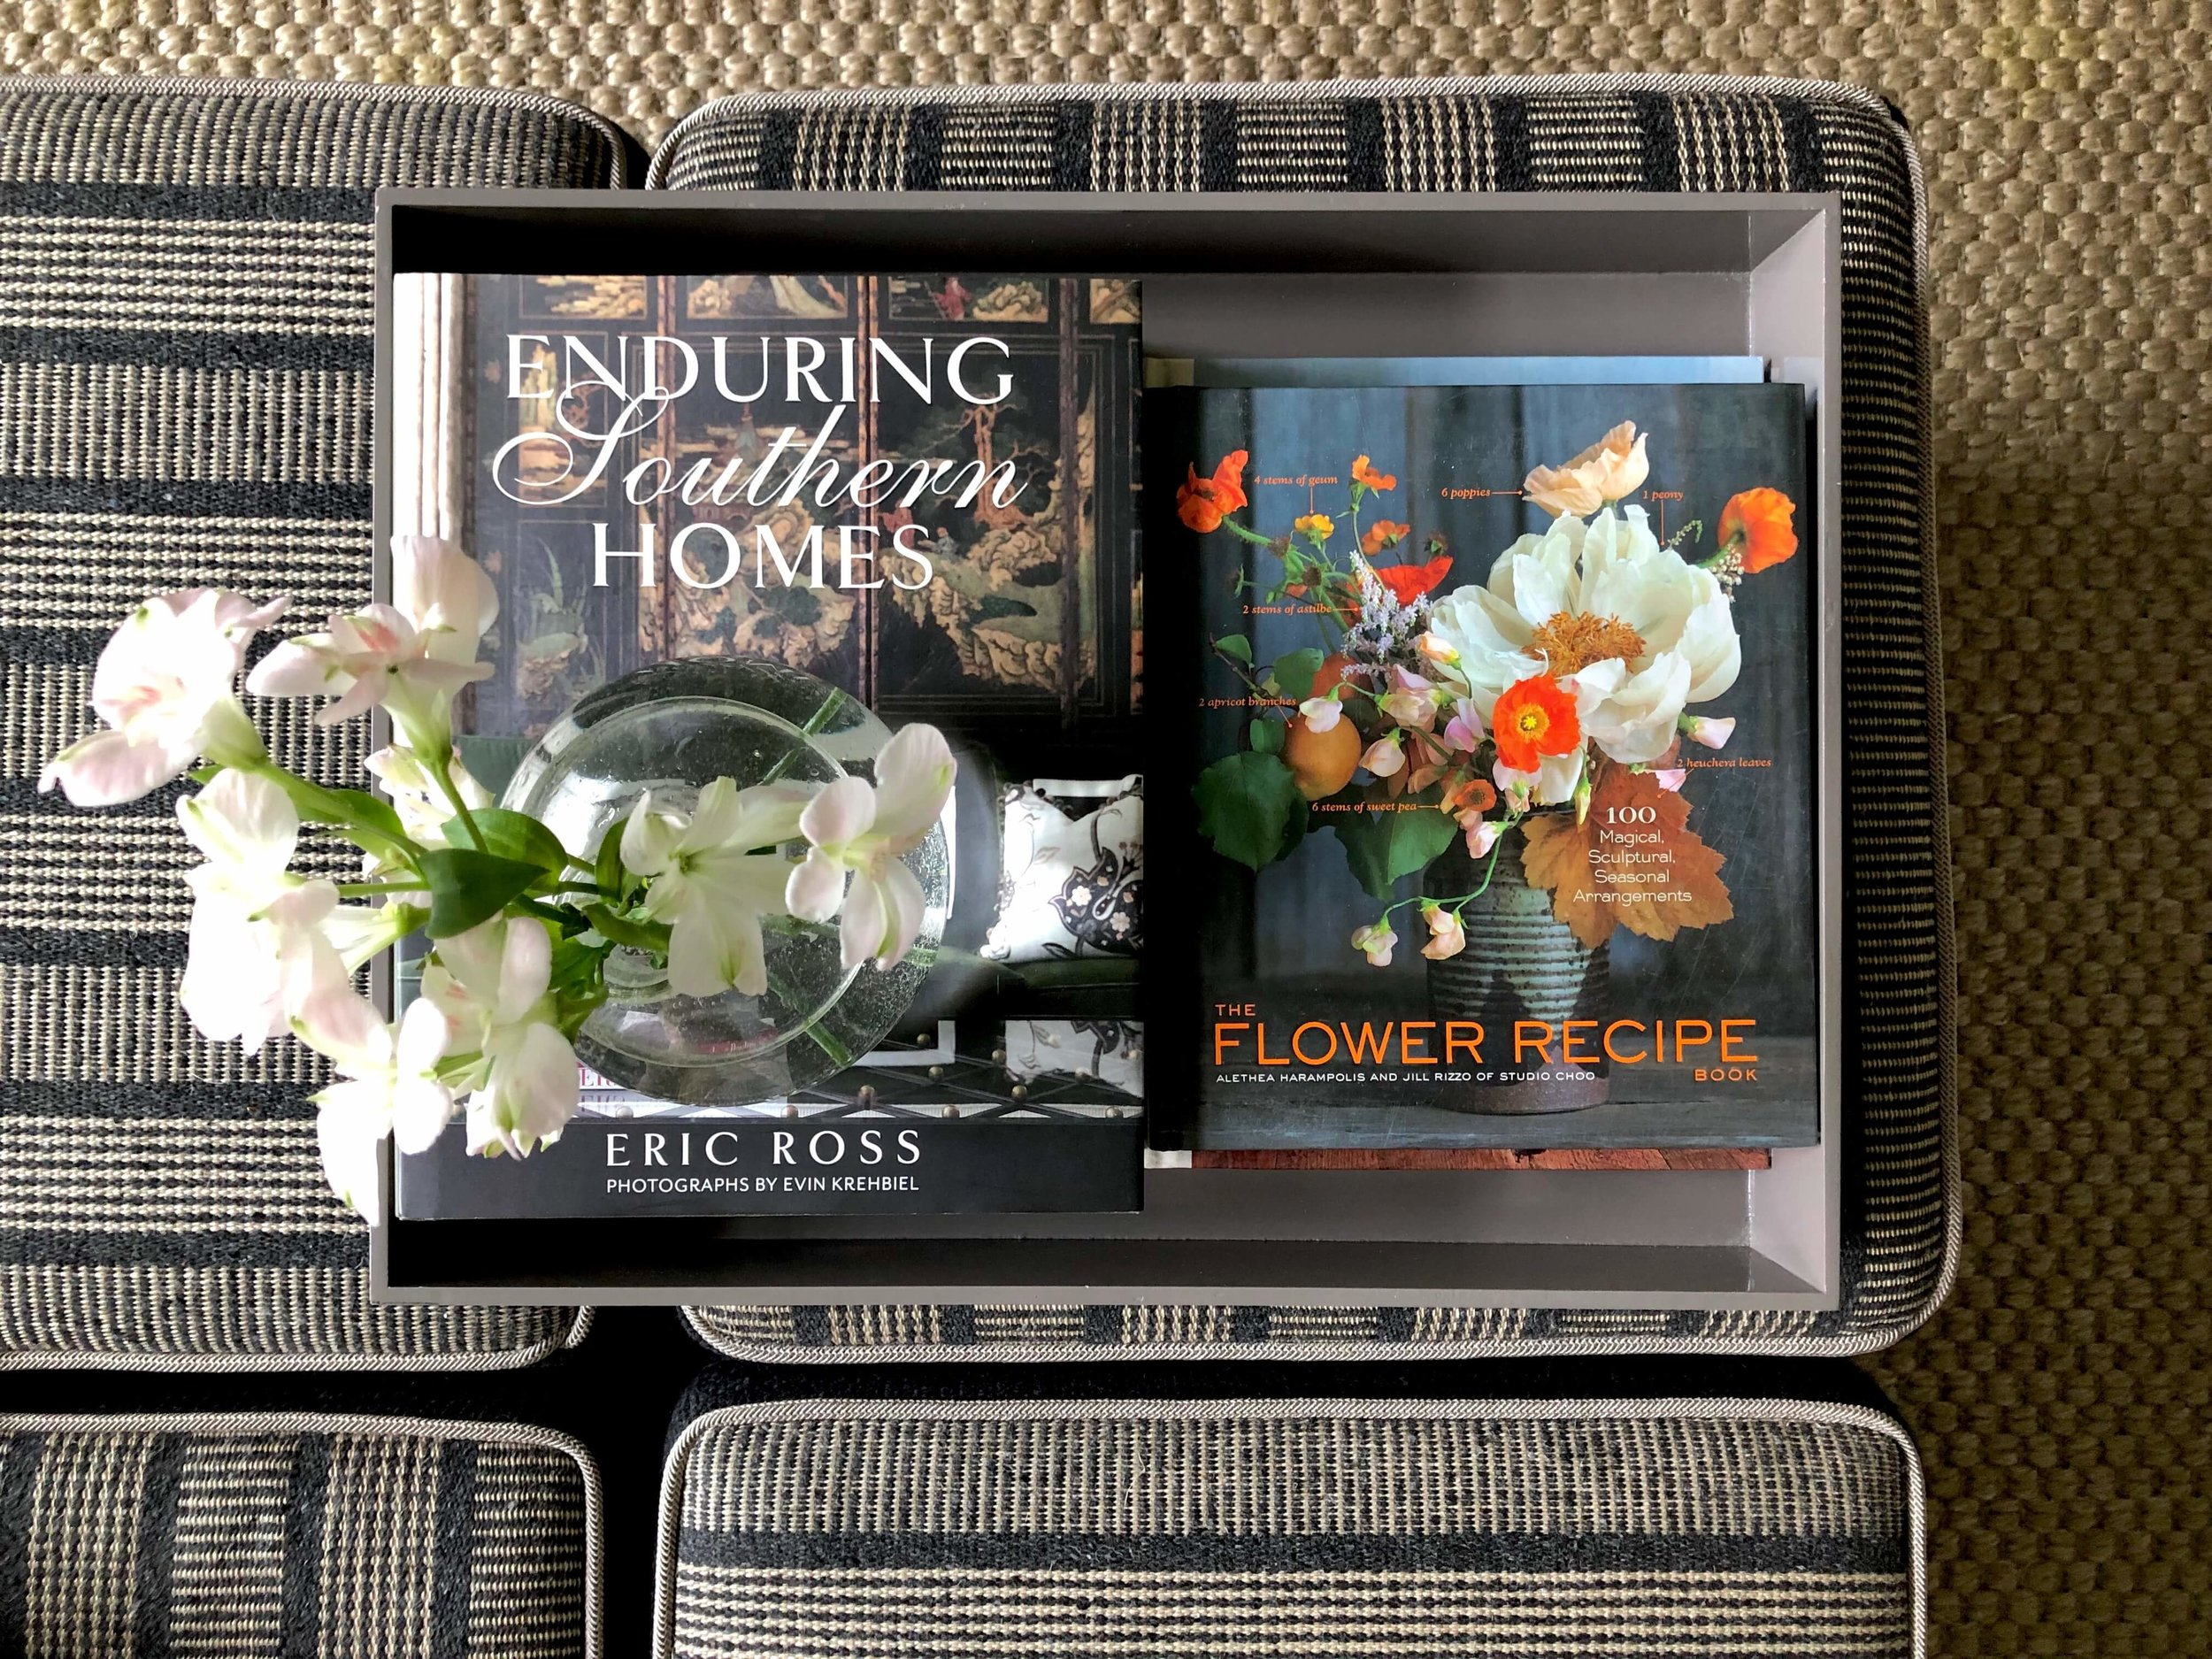 Beautiful Books For Styling Coffee Tables And Book Shelves | Carla Aston, Designer #coffeetablebooks #bookshelfstyling #coffeetablestyling